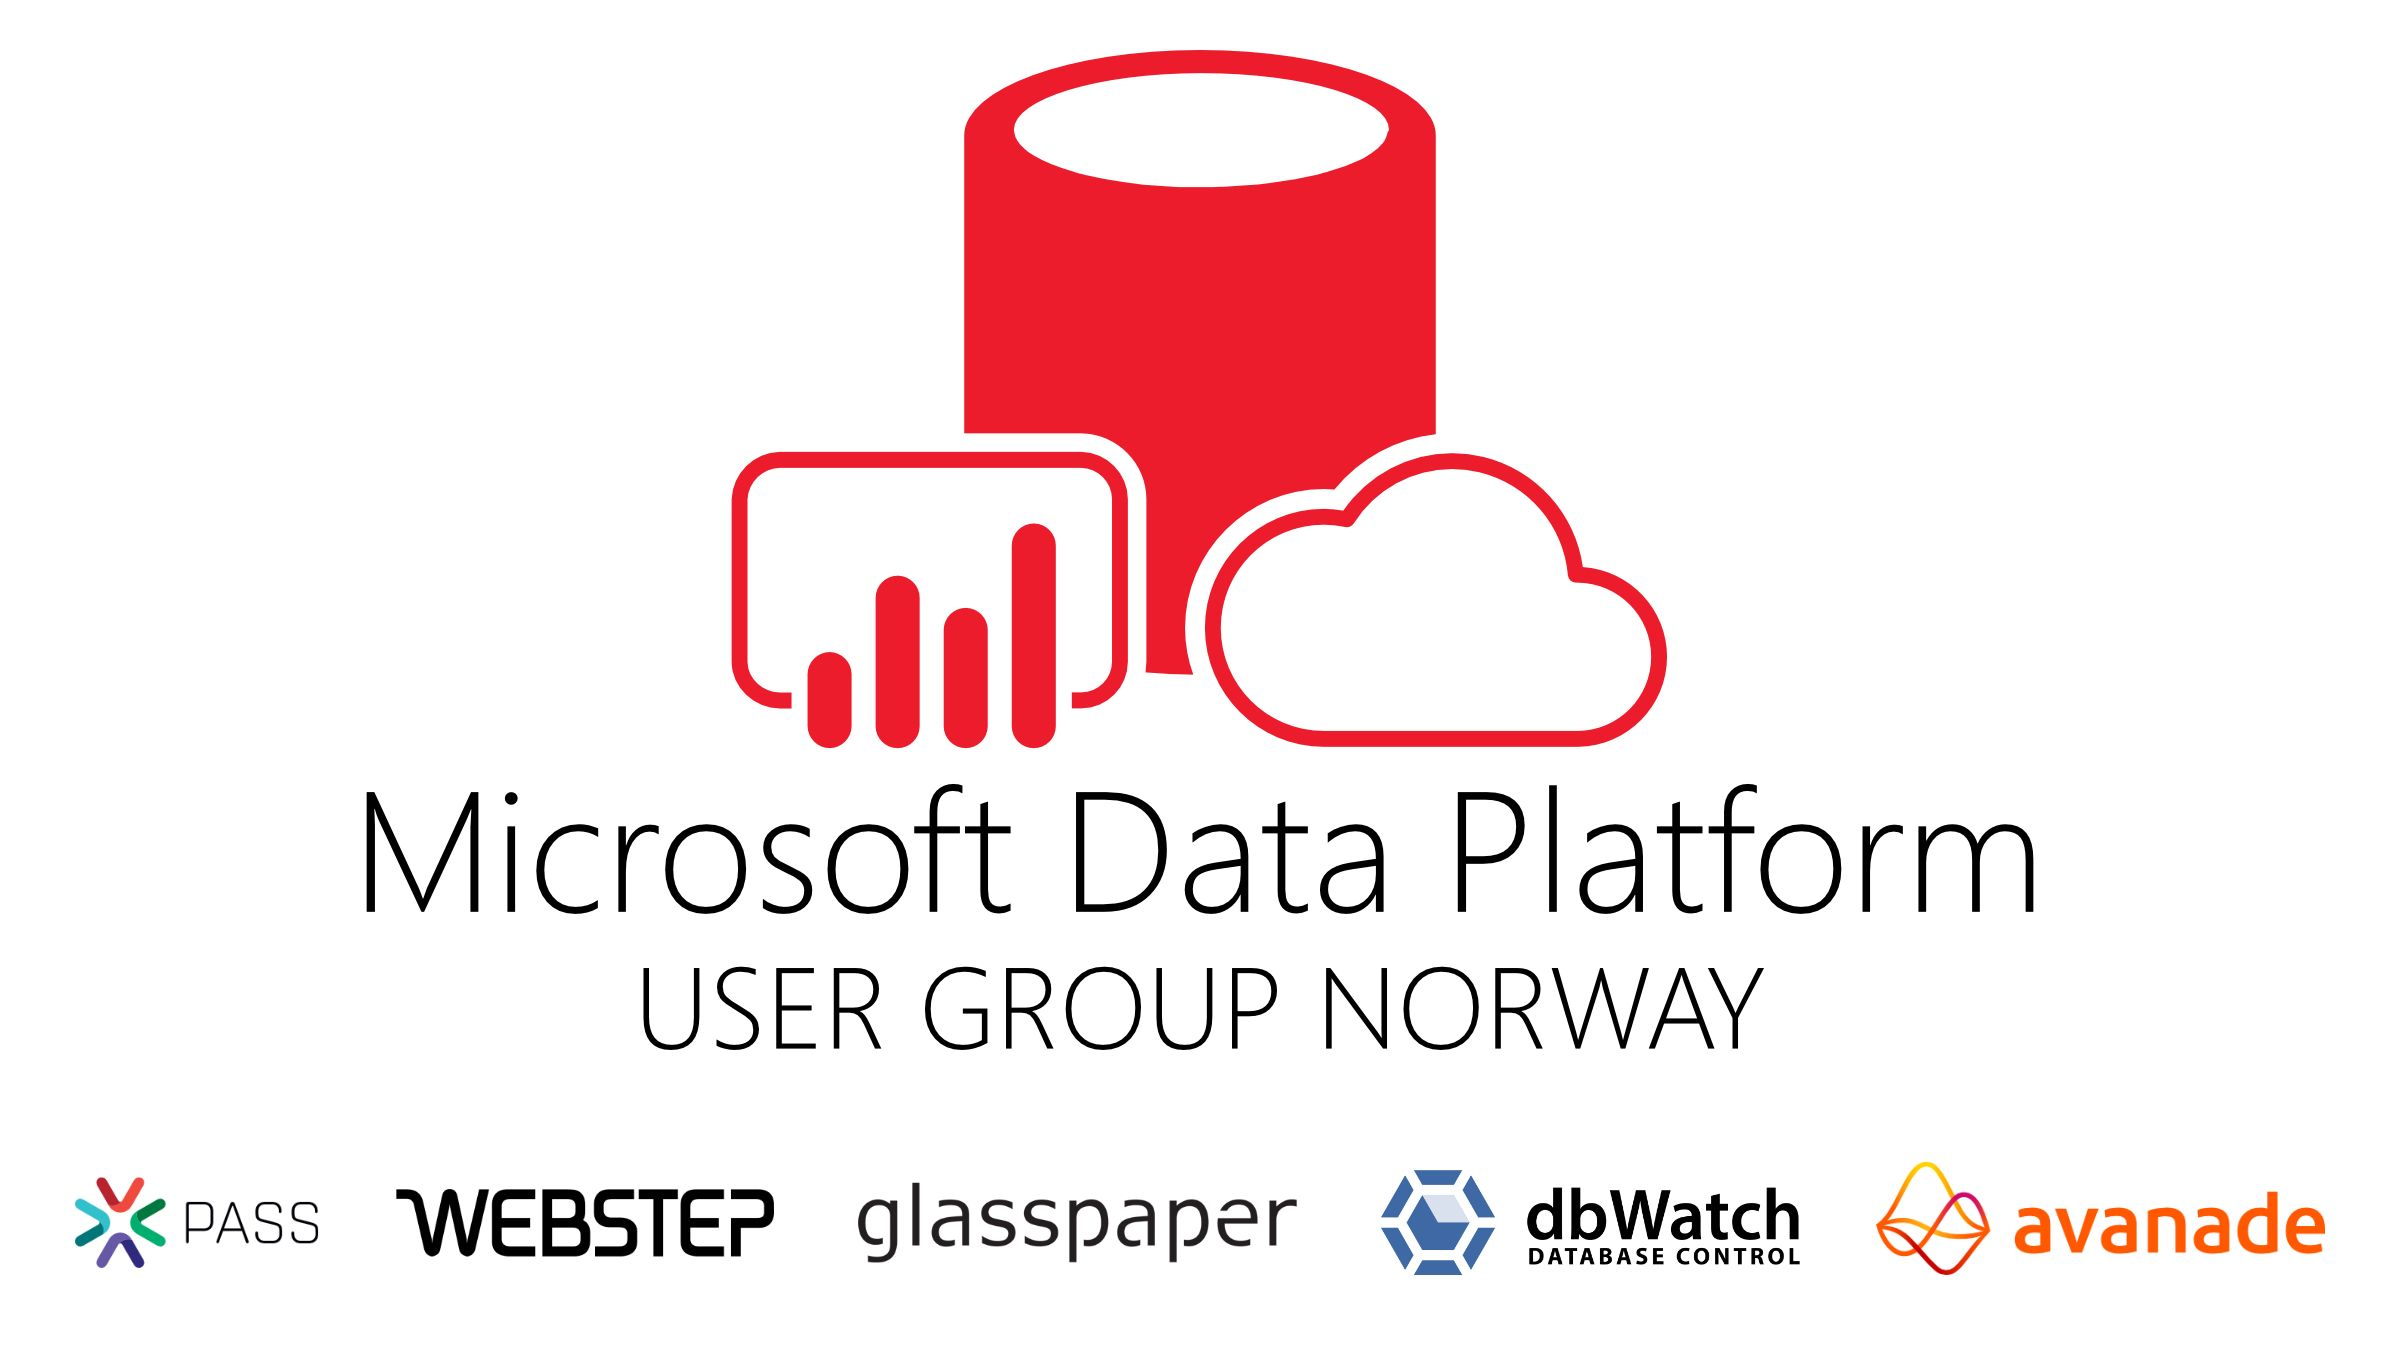 Microsoft Data Platform User Group Norway